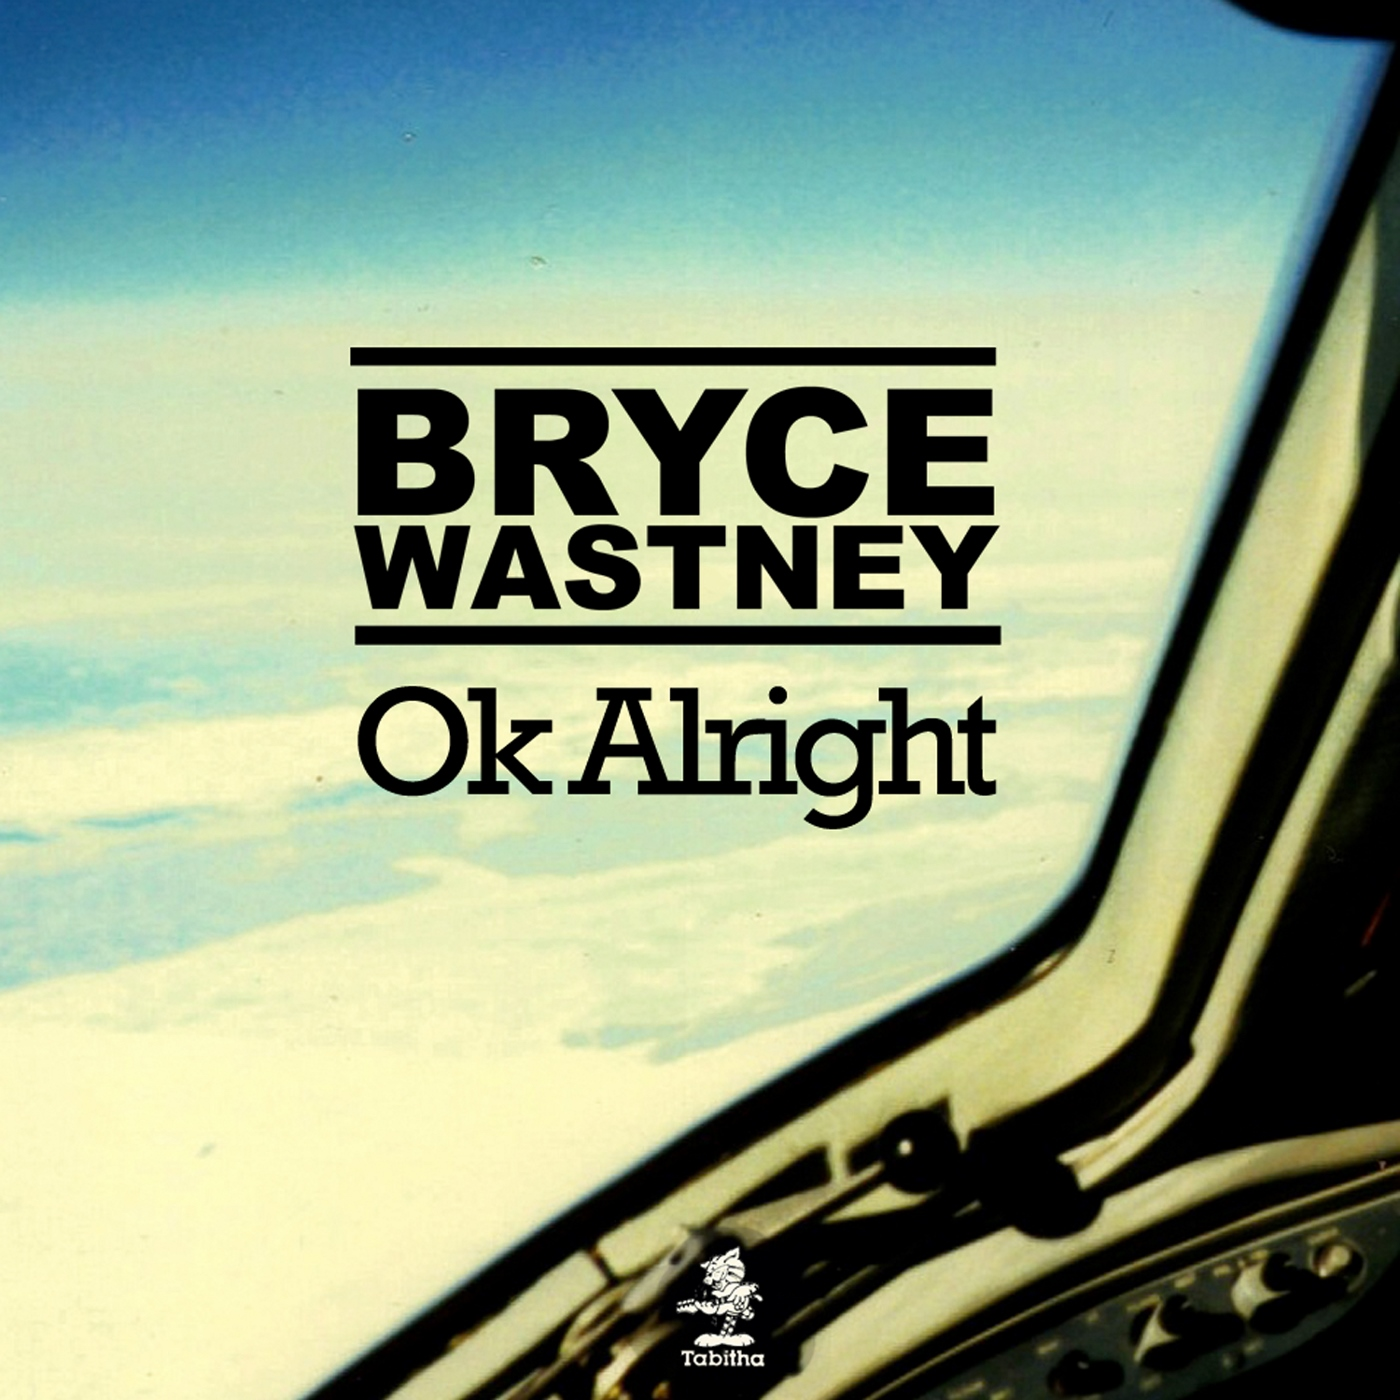 Bryce Wastney - Ok alright